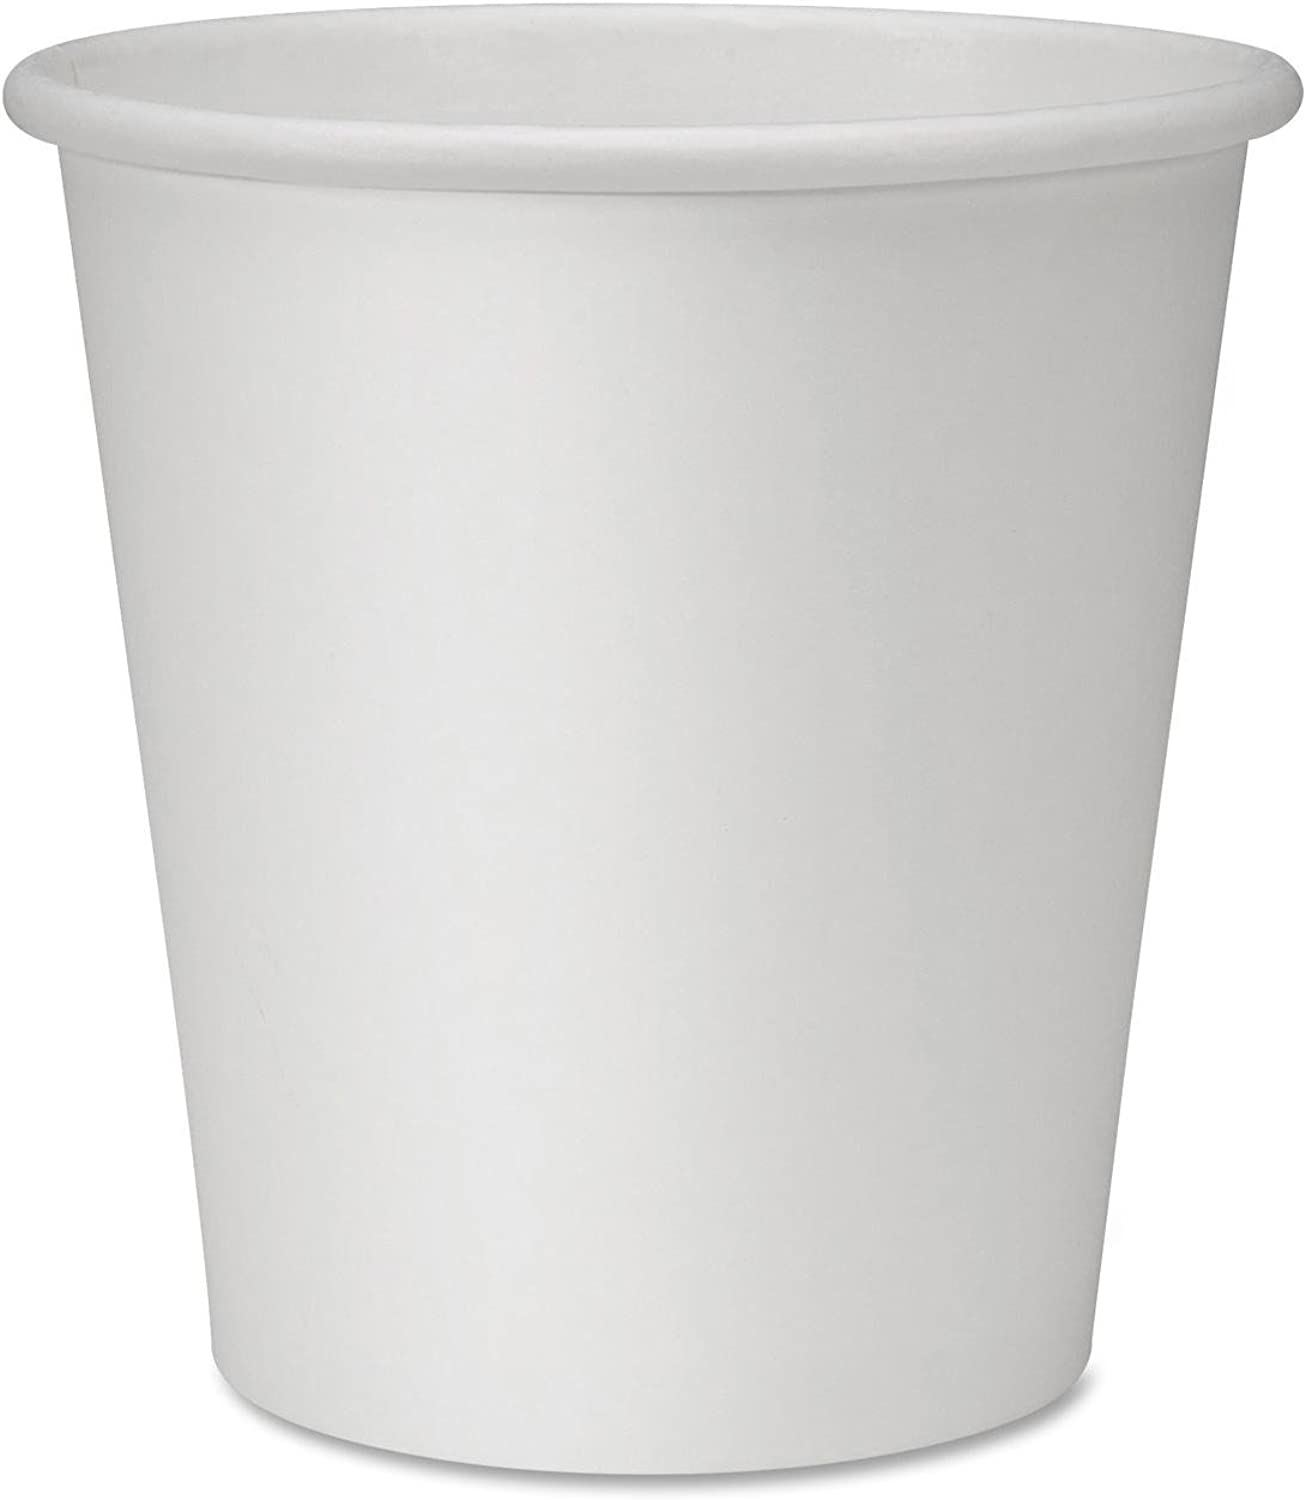 Genuine Joe GJO19046CT Polyurethane-Lined Single-Wall Disposable Hot Cup, 10-Ounce Capacity, White (Carton of 1000)